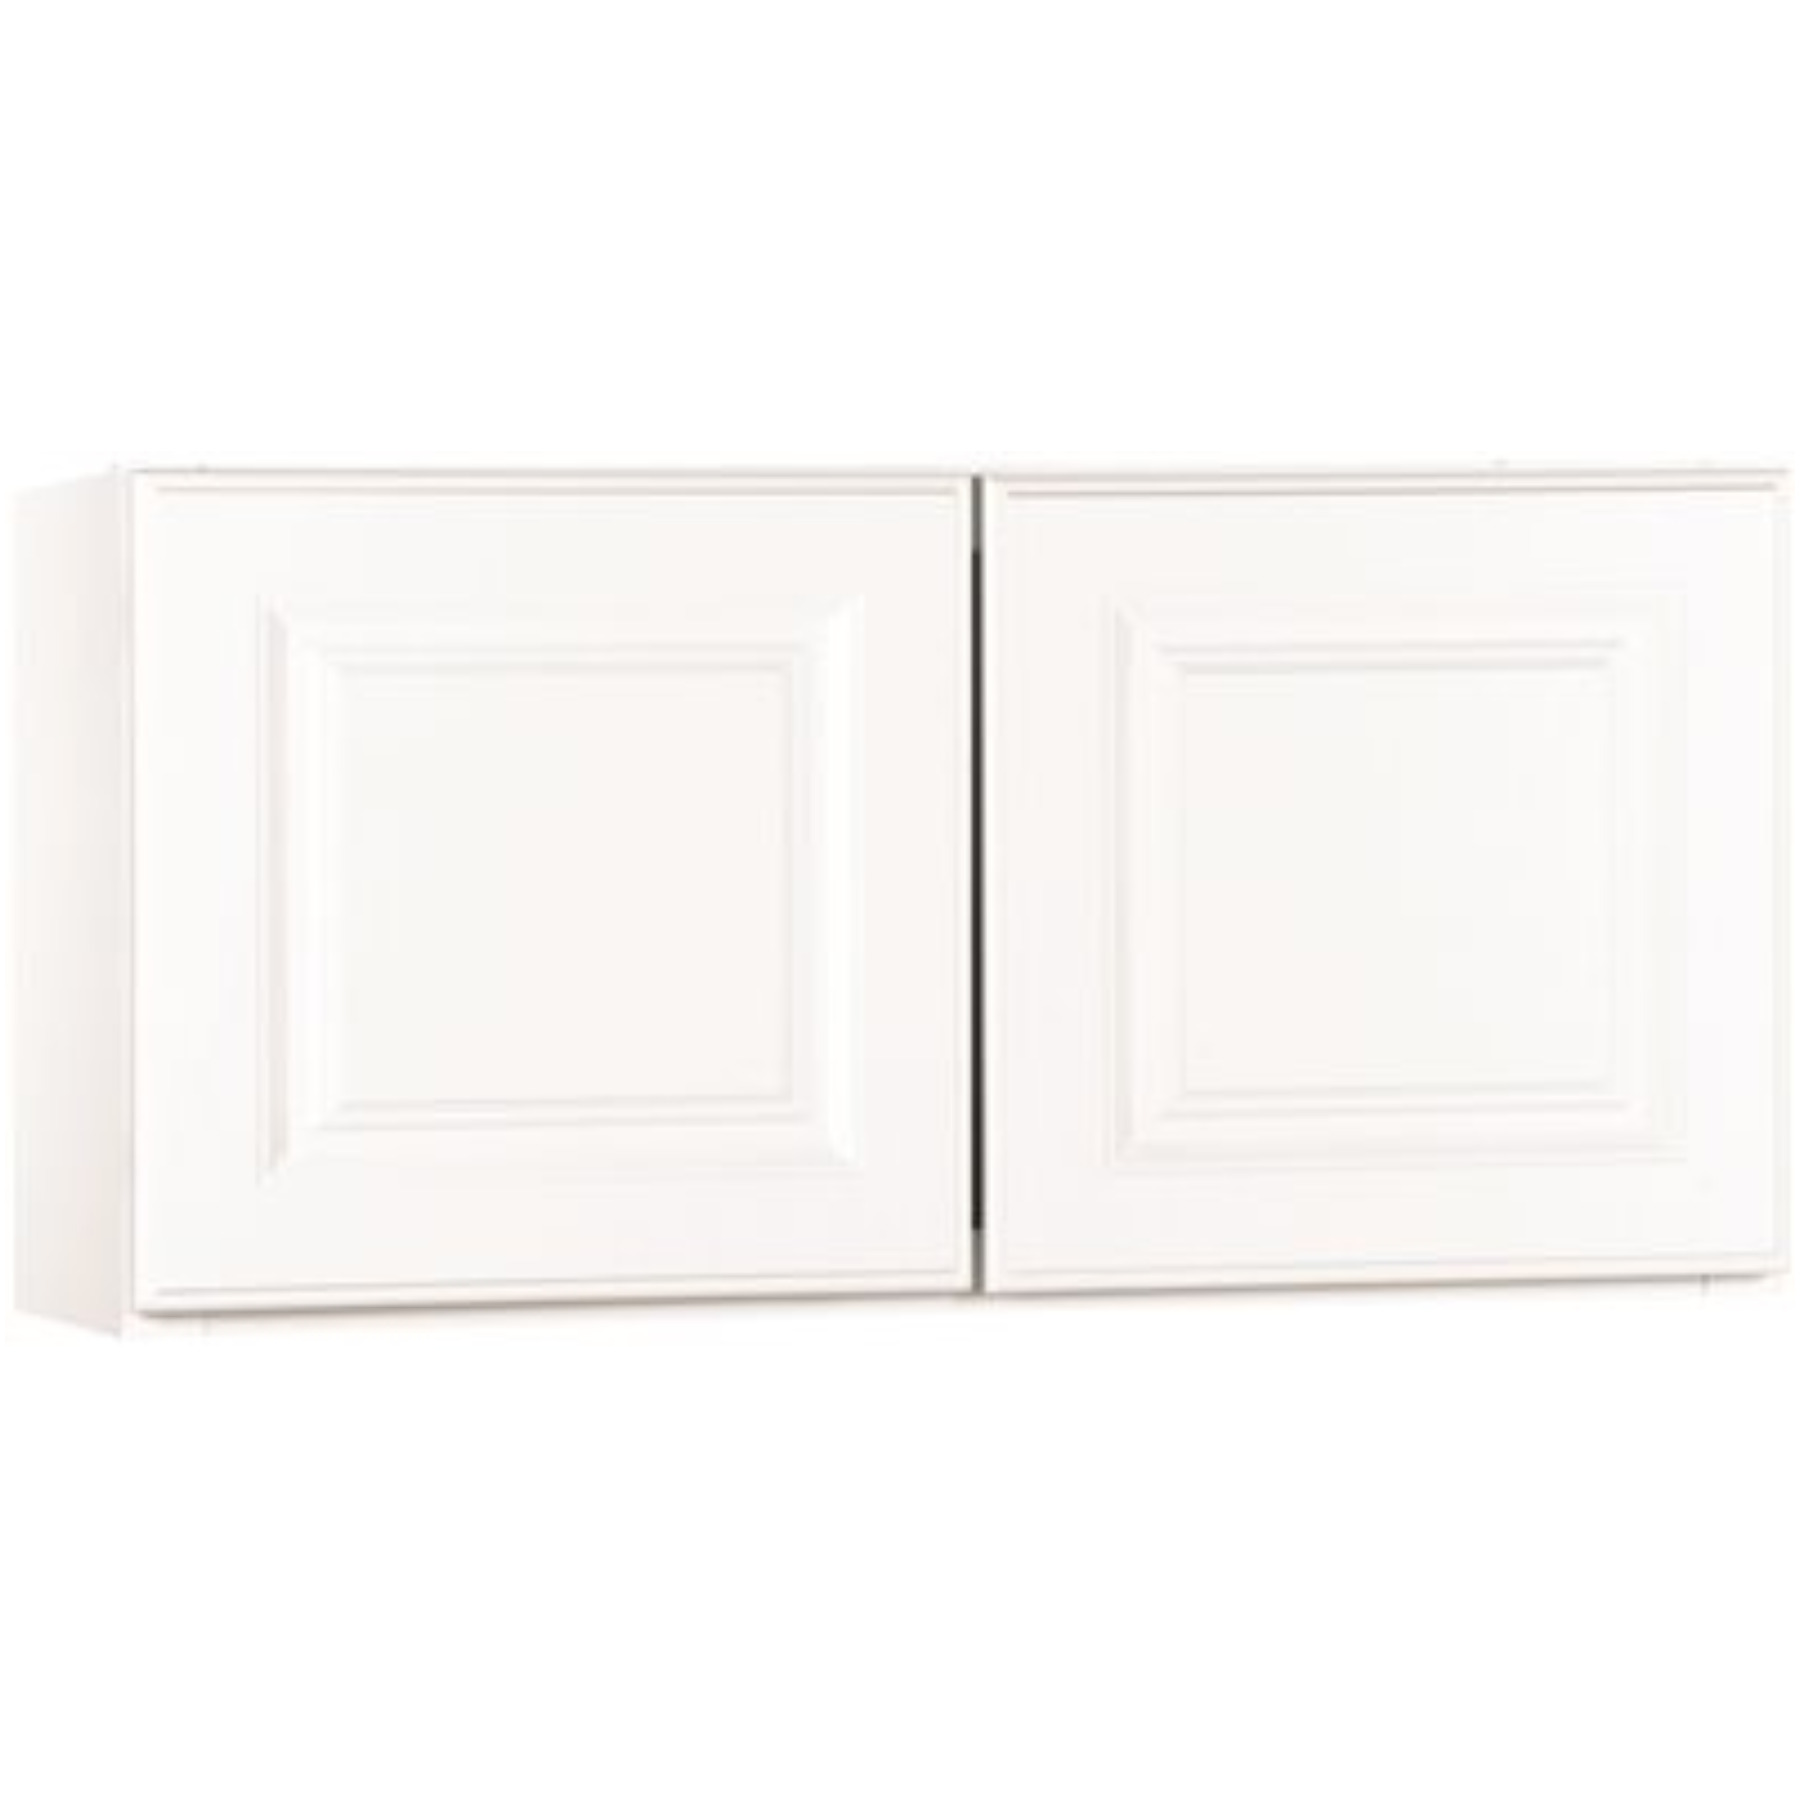 RSI HOME PRODUCTS KITCHEN WALL BRIDGE CABINET, FULLY ASSEMBLED, RAISED PANEL, WHITE, 30X12X12 IN.